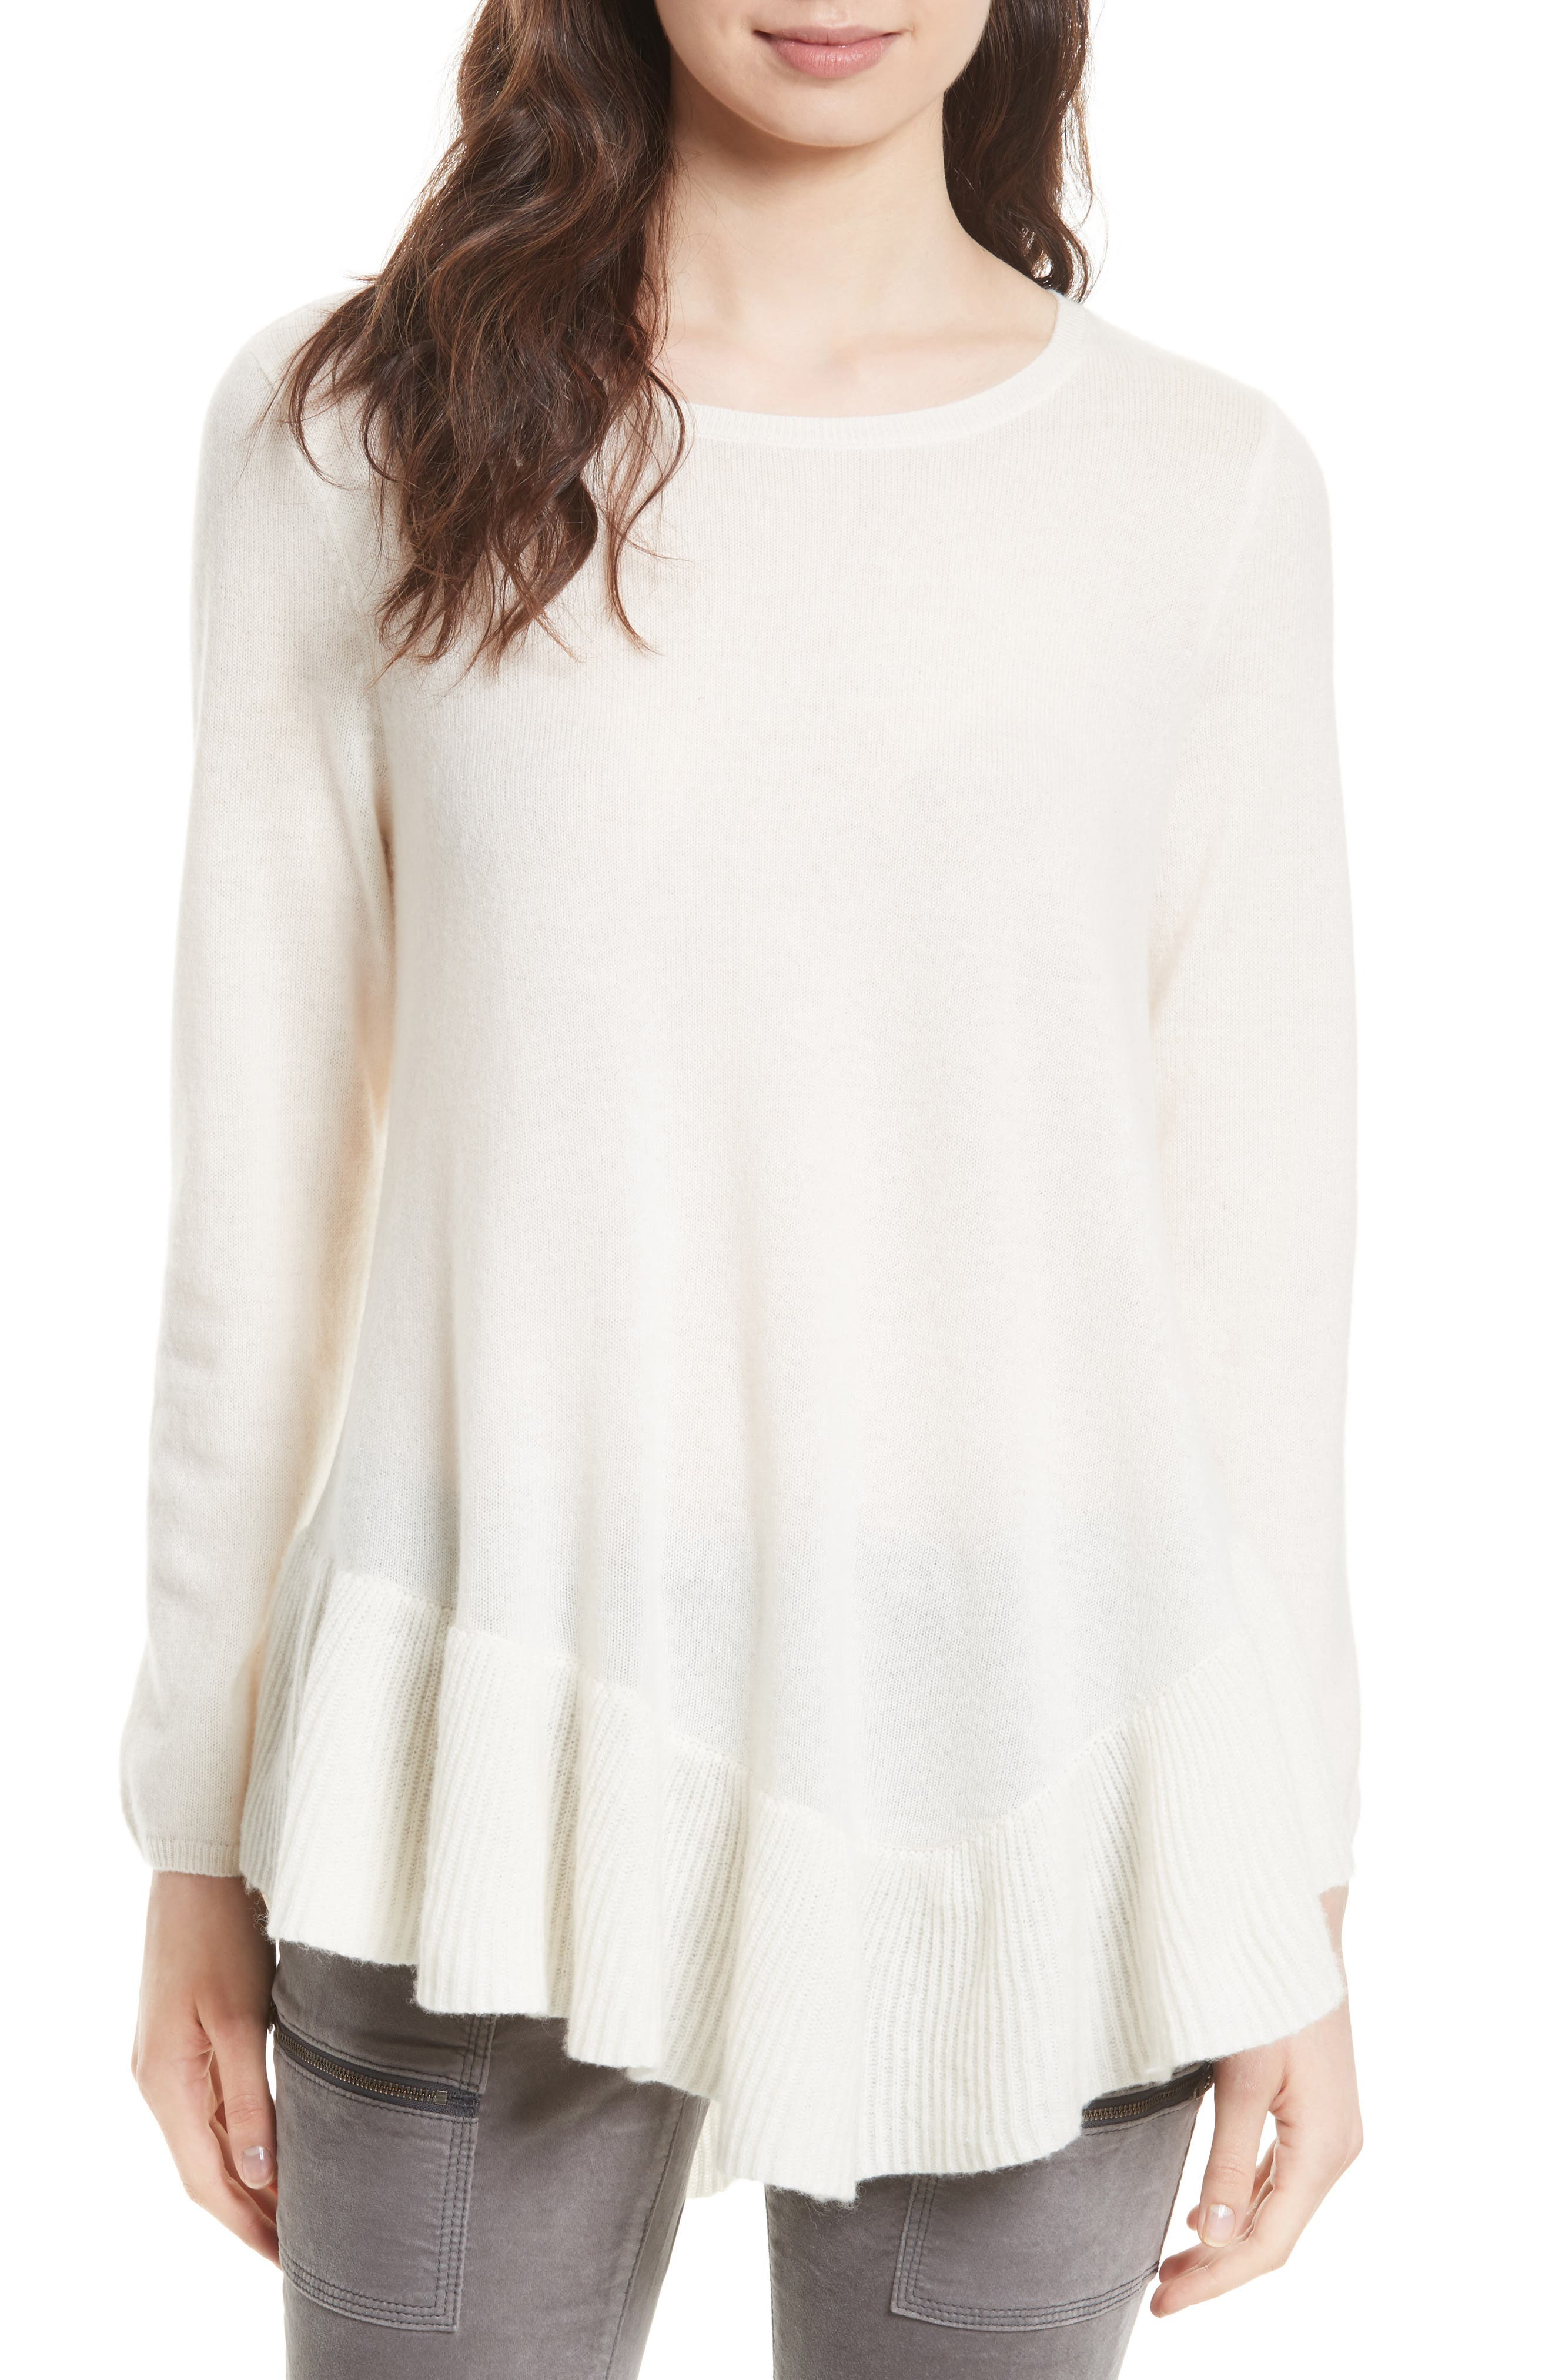 Tambrel N Wool & Cashmere Asymmetrical Sweater Tunic,                         Main,                         color, Porcelain